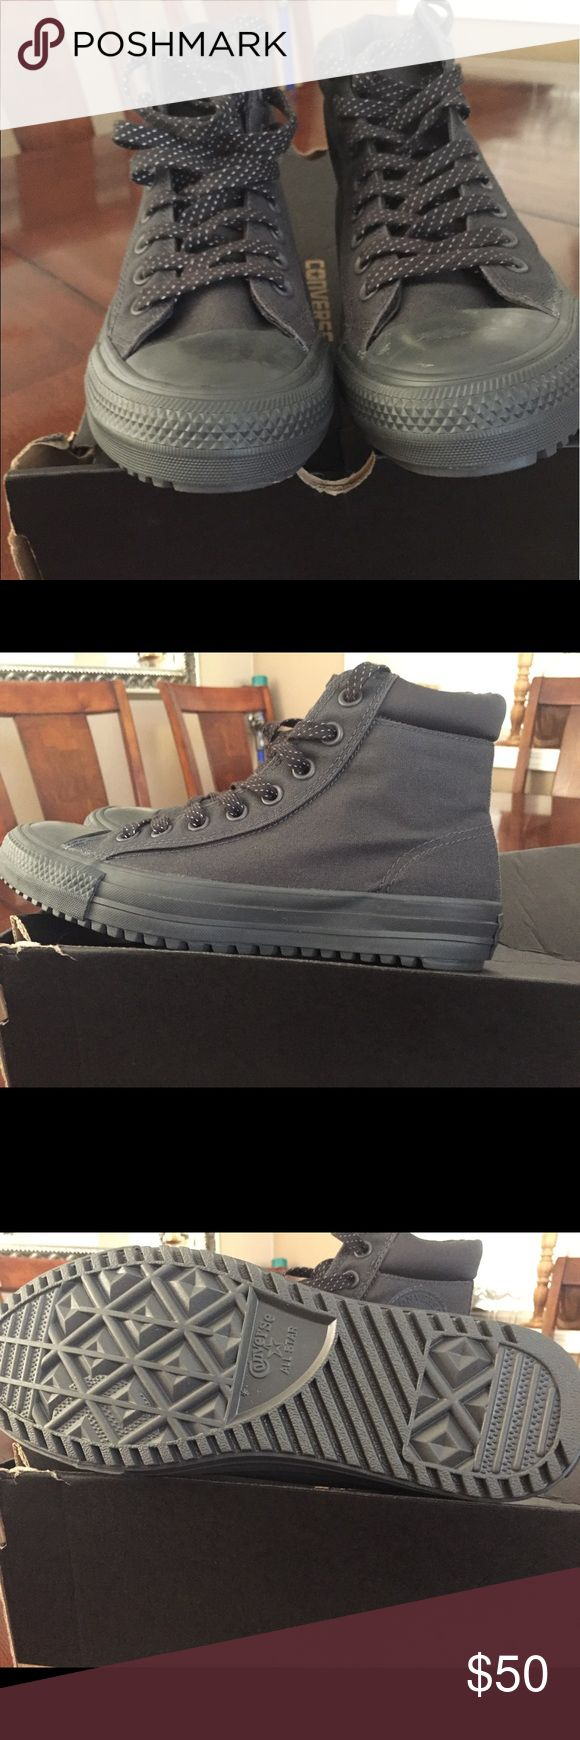 Men's Converse sz 7 Men's Converse sz 7. Or can be women's size 9. Brand New. Color is called Almost Black.  Label inside says Counter Climate water repellent. Converse Shoes Sneakers